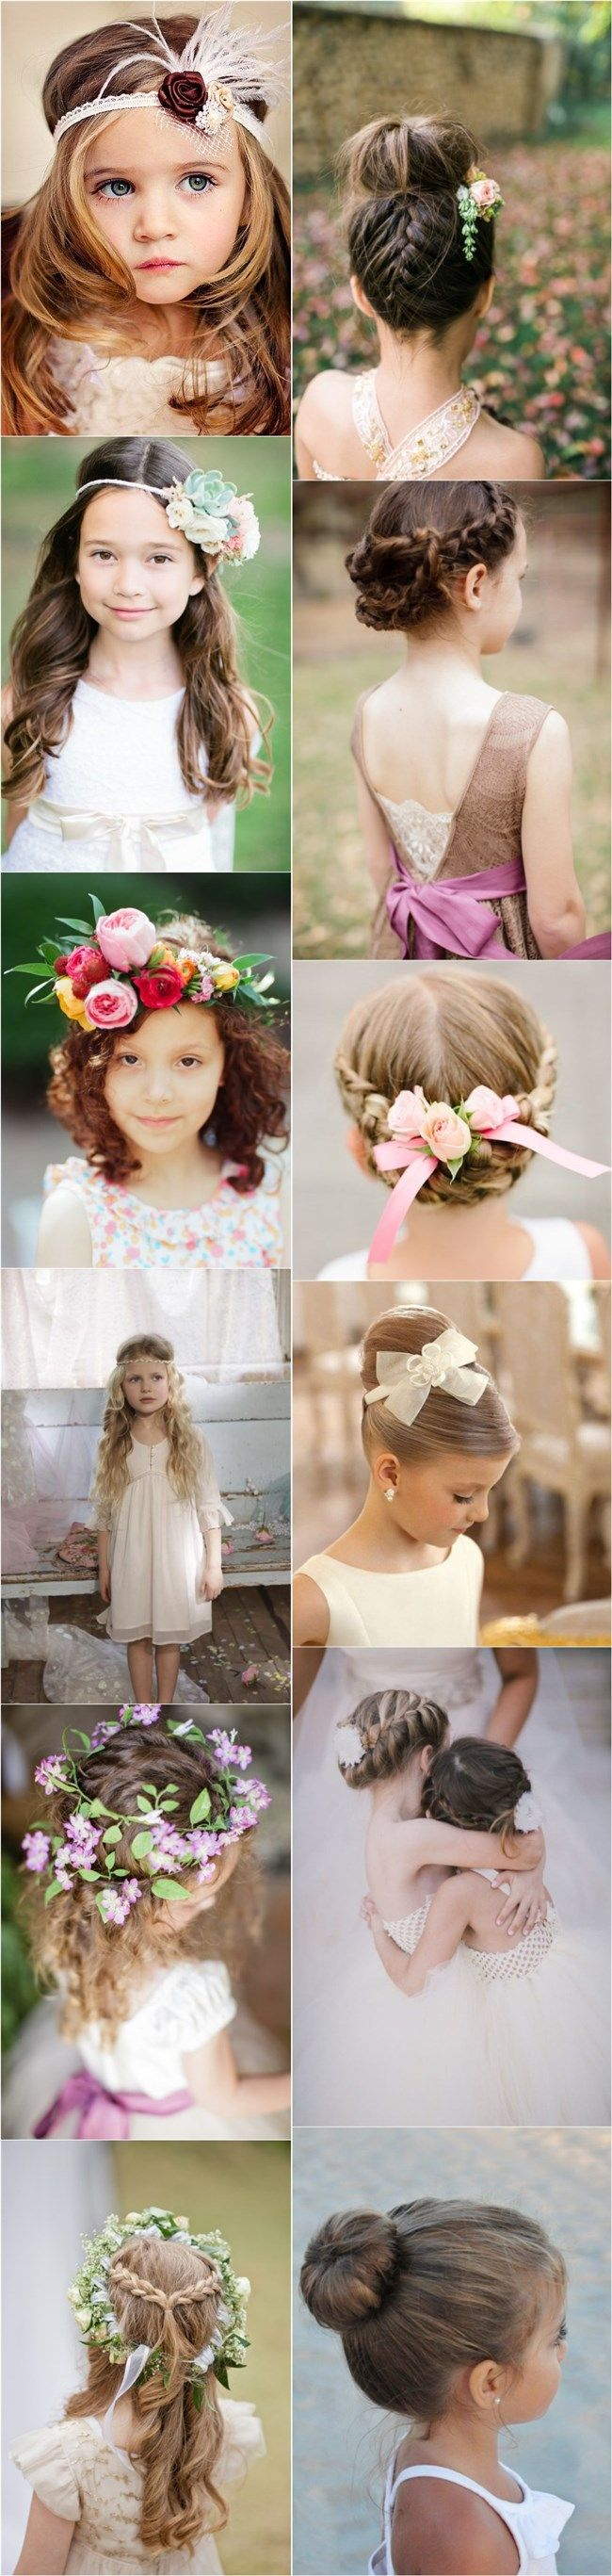 38 super cute little girl hairstyles for wedding | wedding